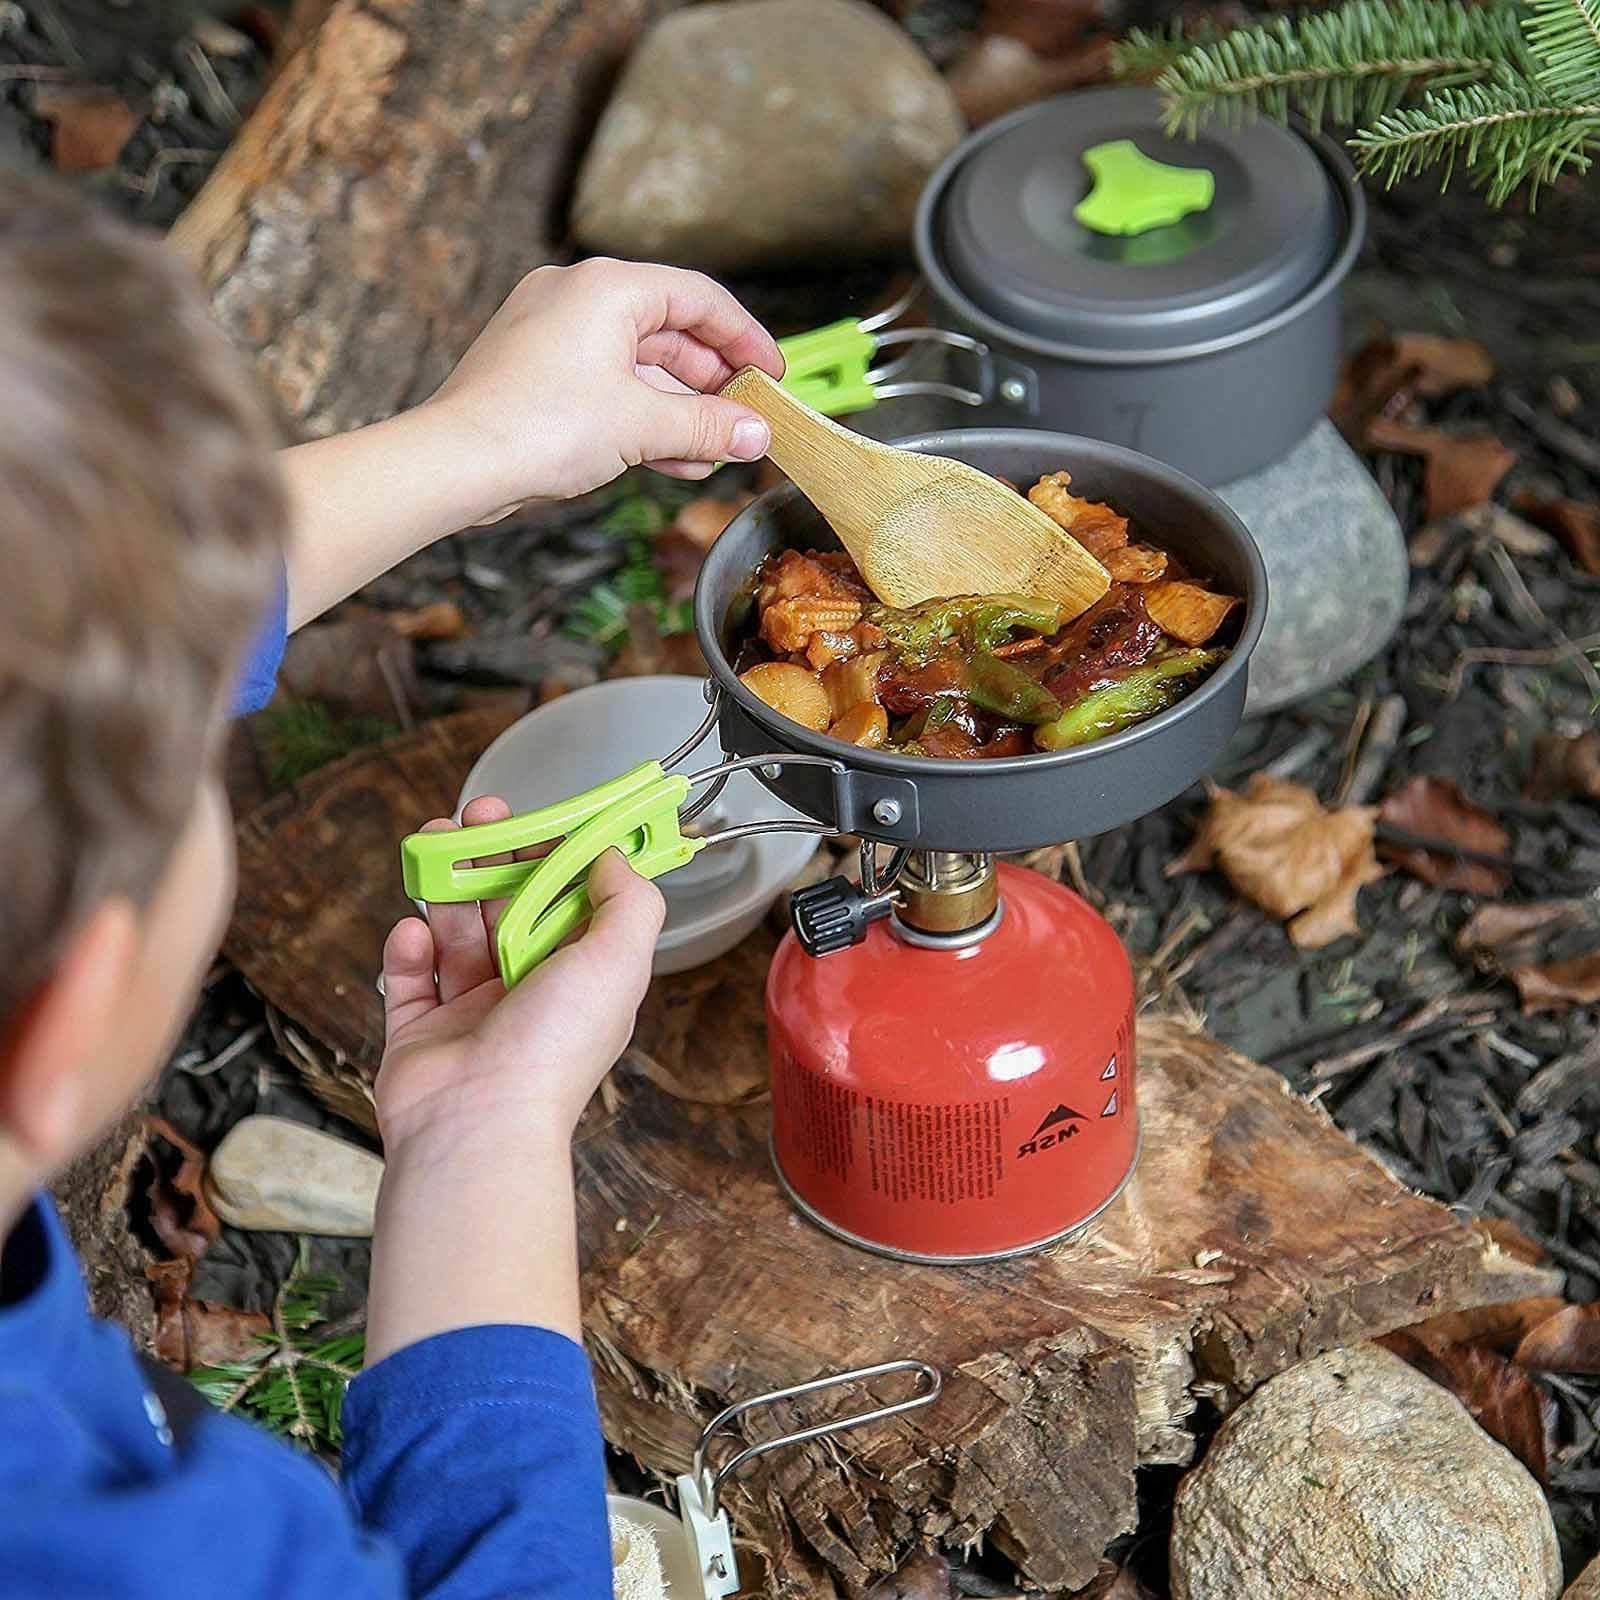 Camping Cookware Kit Cookset Kit Gear Backpacking